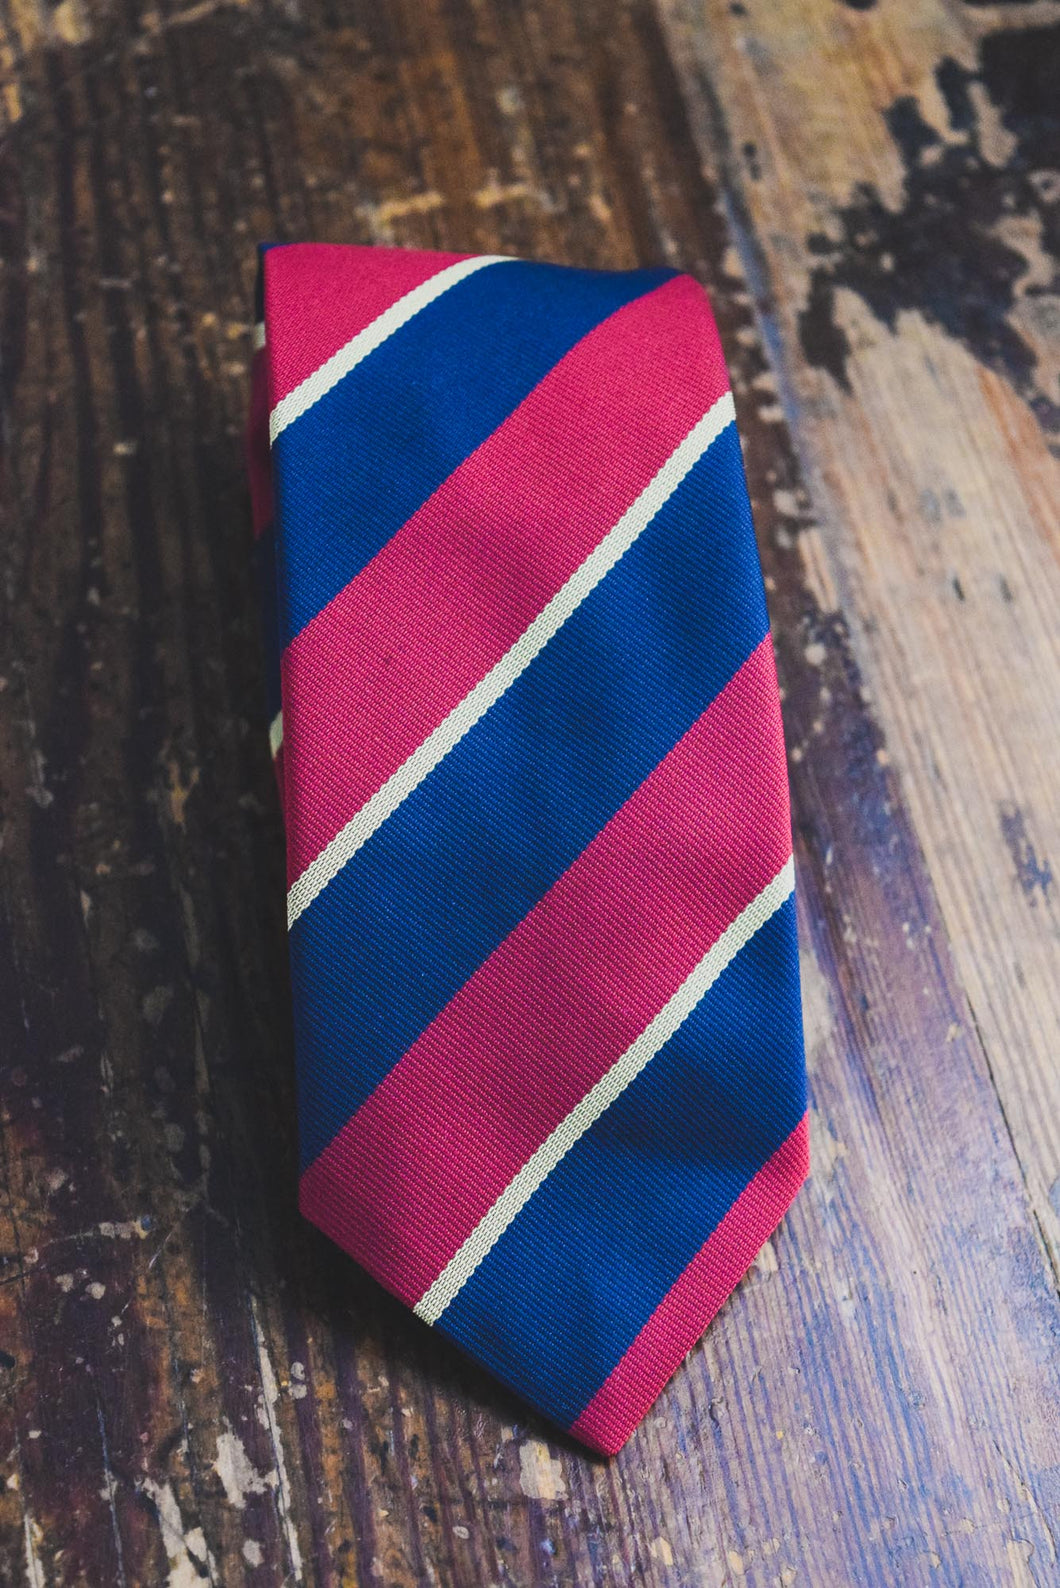 Sale Uni Striped Tie - Polyester